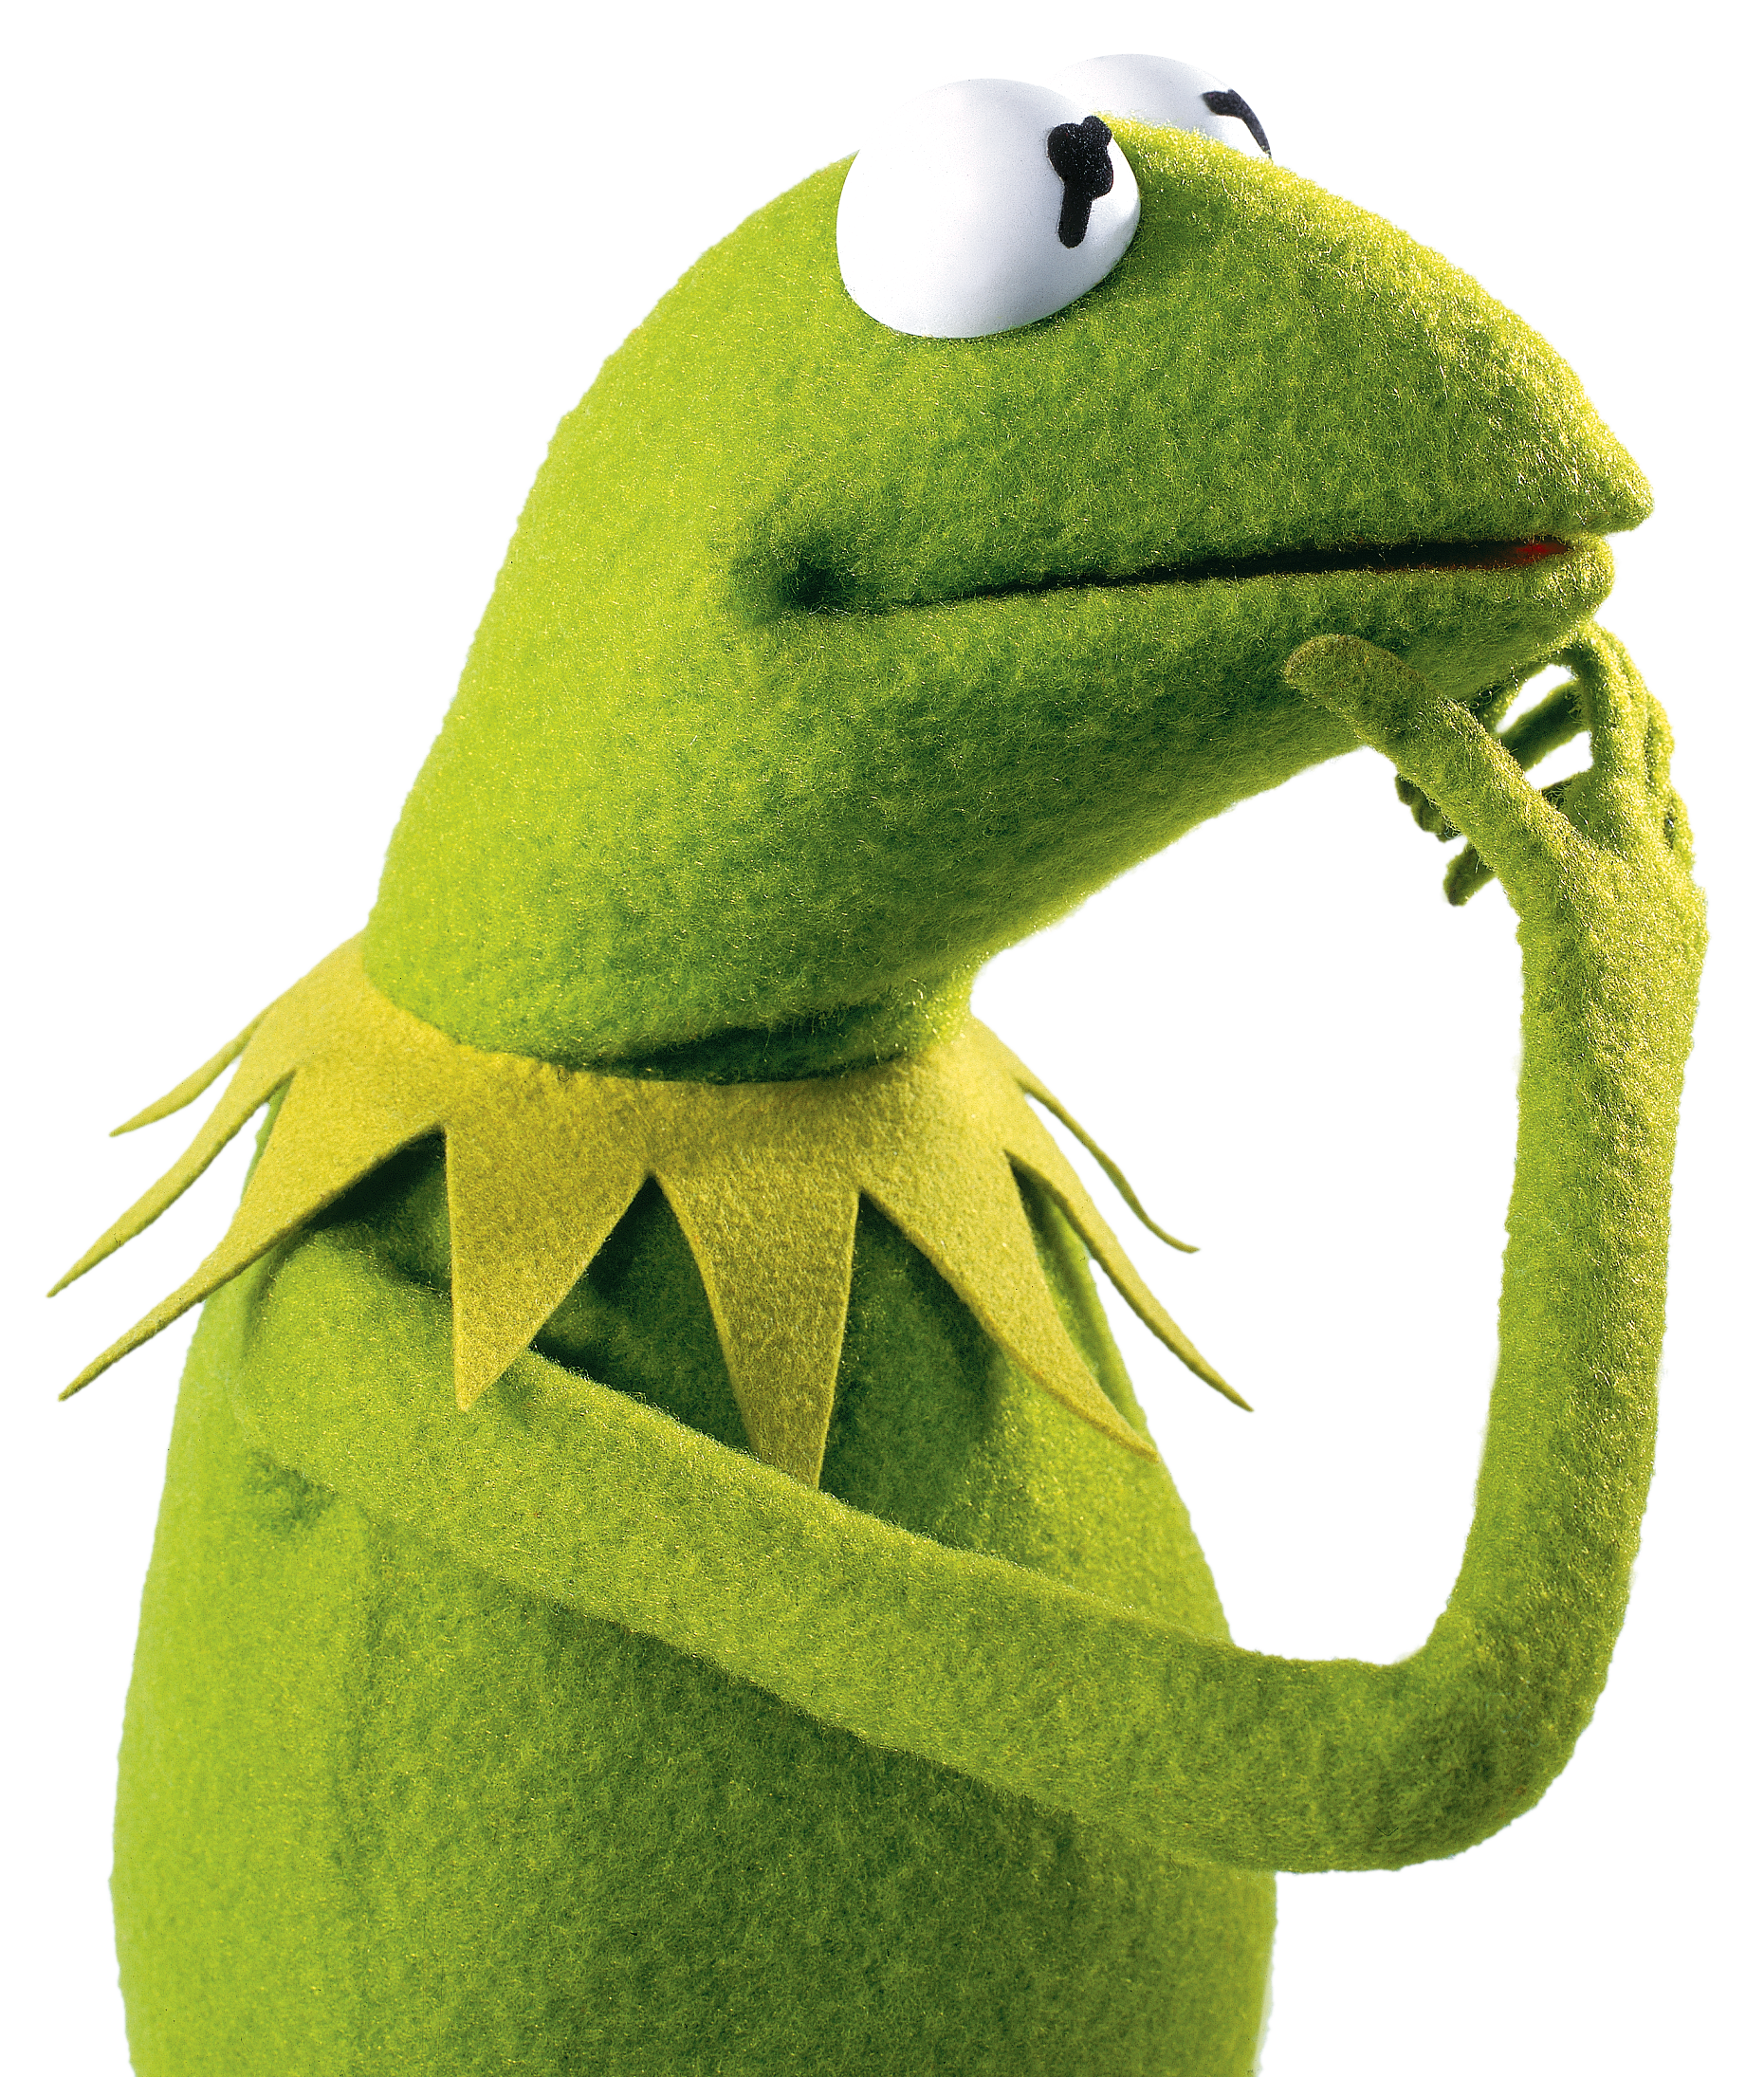 Evil kermit png. Contemplates how to make